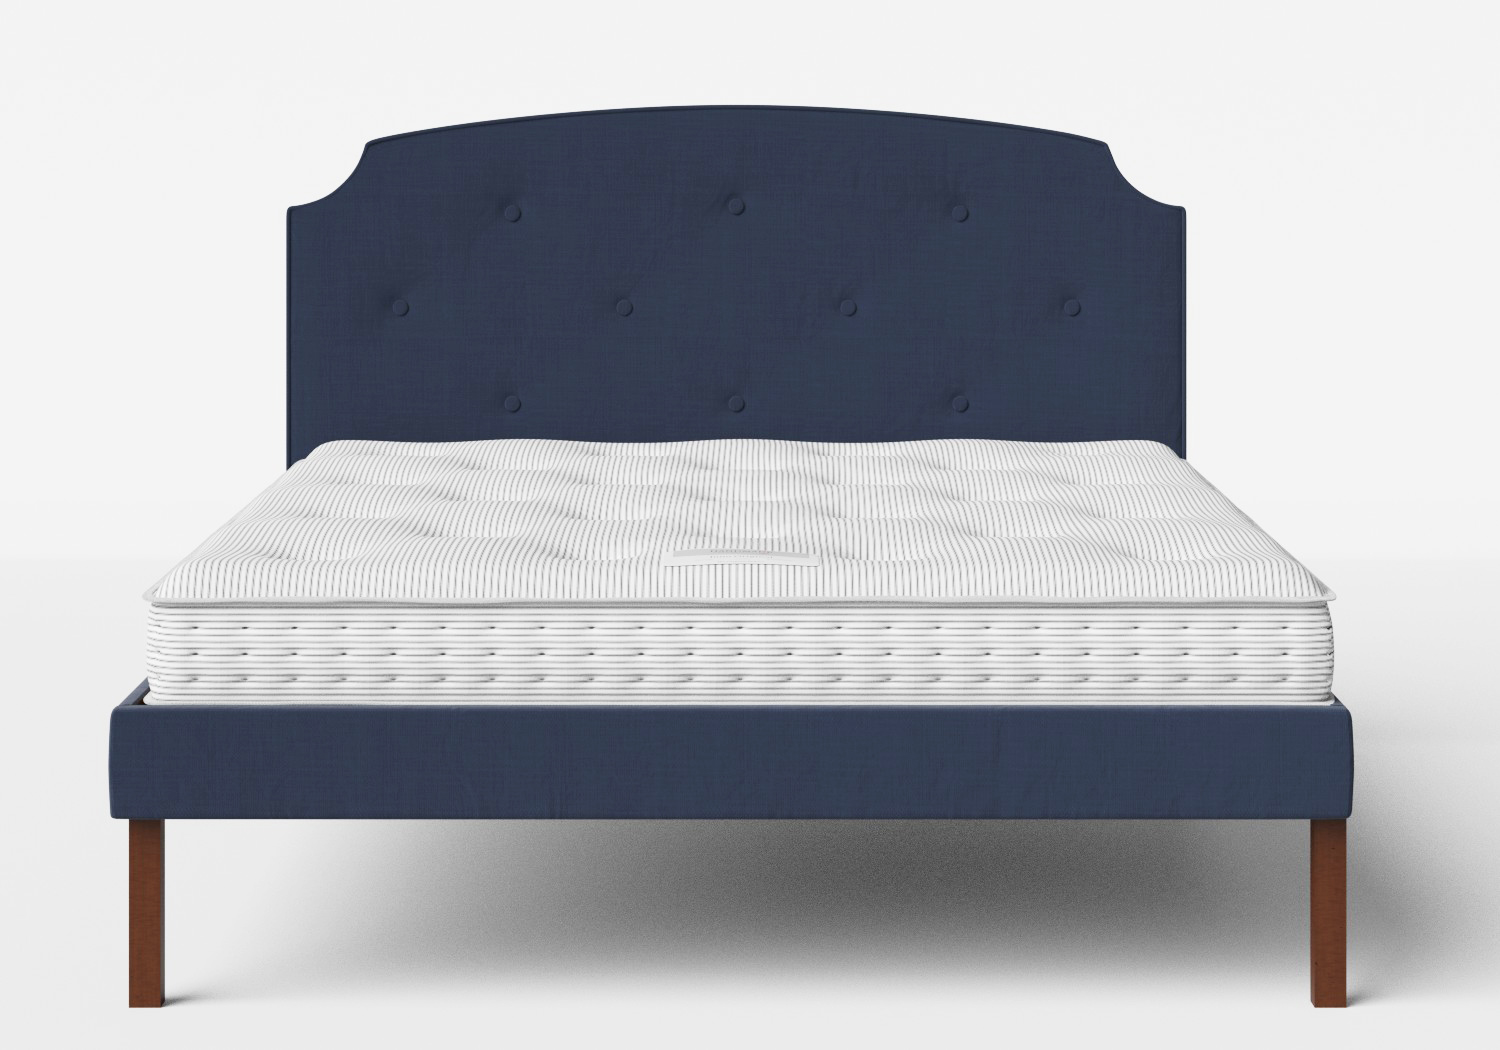 Kobe Upholstered Bed in Navy fabric with buttoning shown with Juno 1 mattress